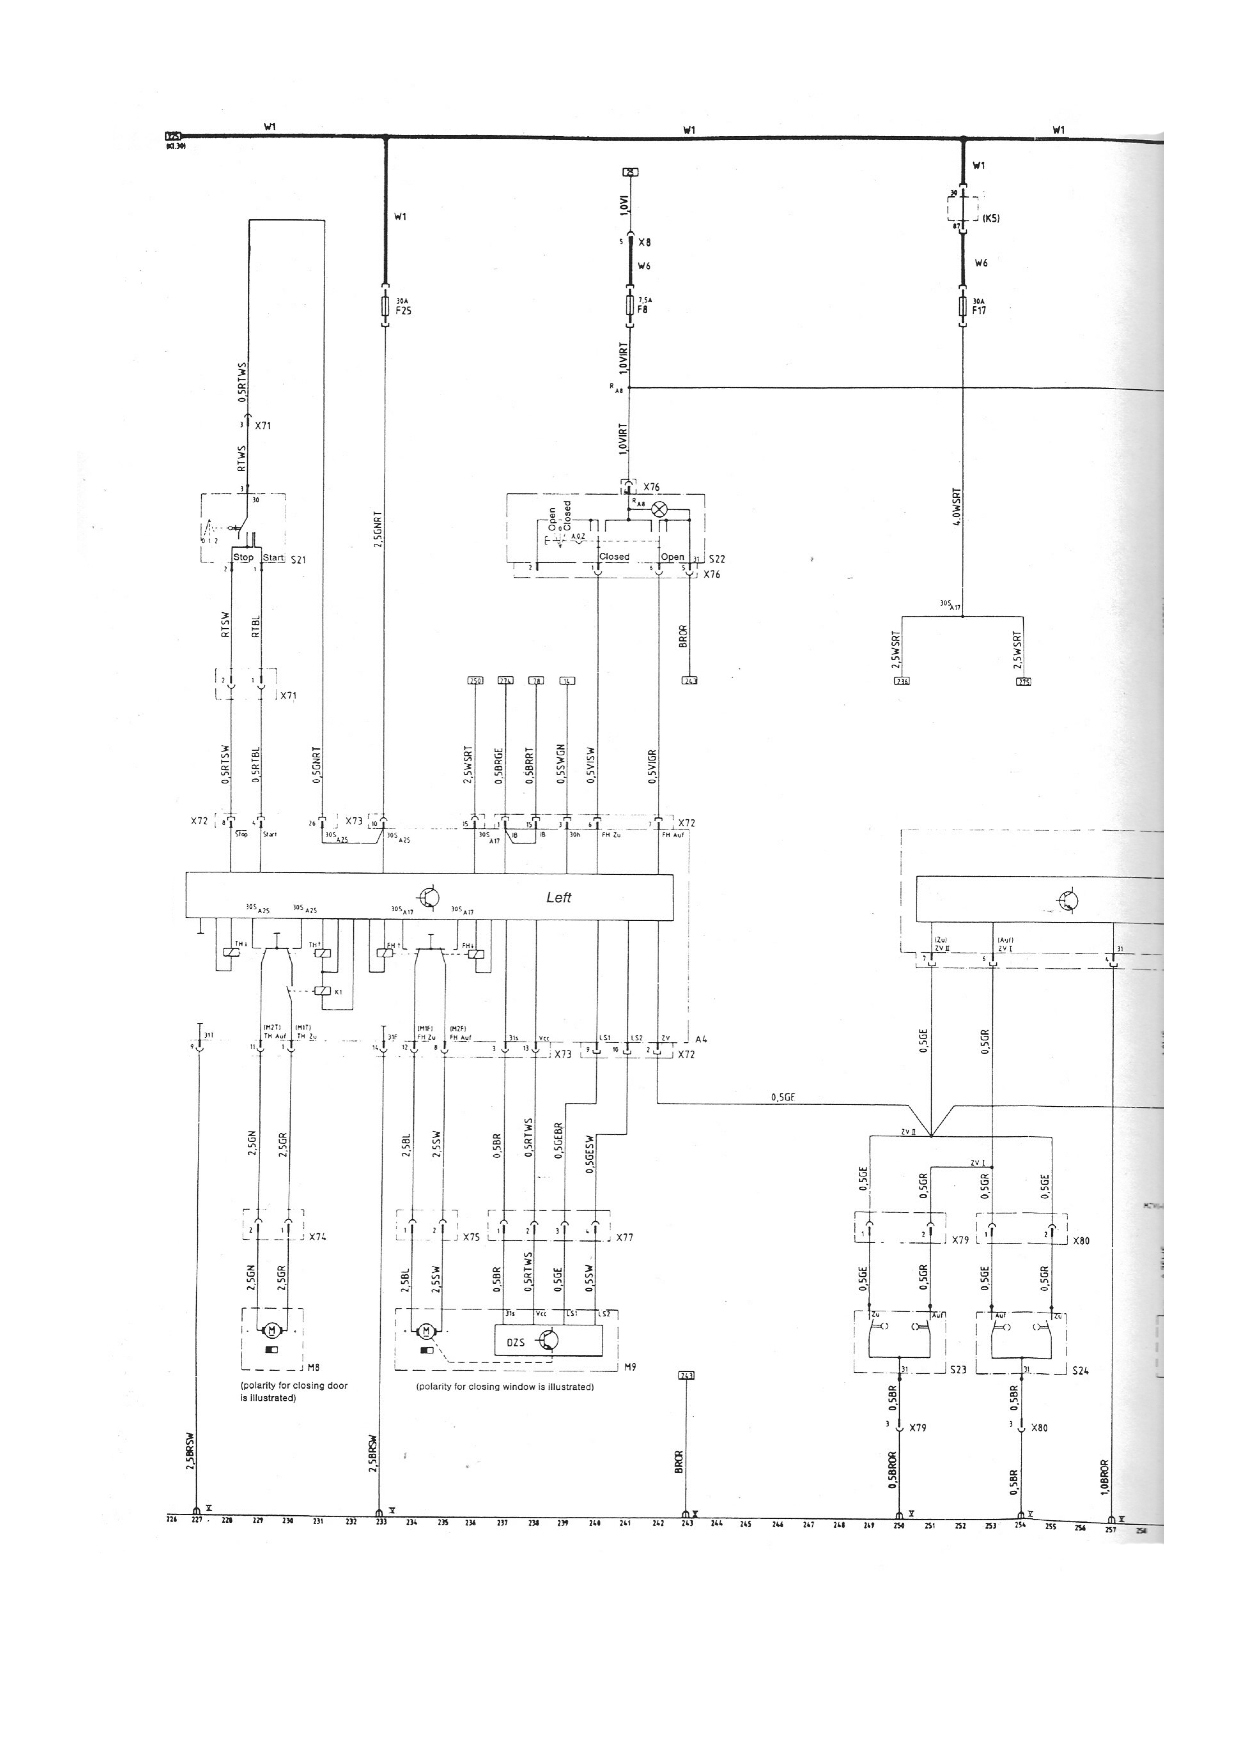 Phenomenal Z1 Wiring Diagram Wiring Diagram Wiring 101 Cajosaxxcnl